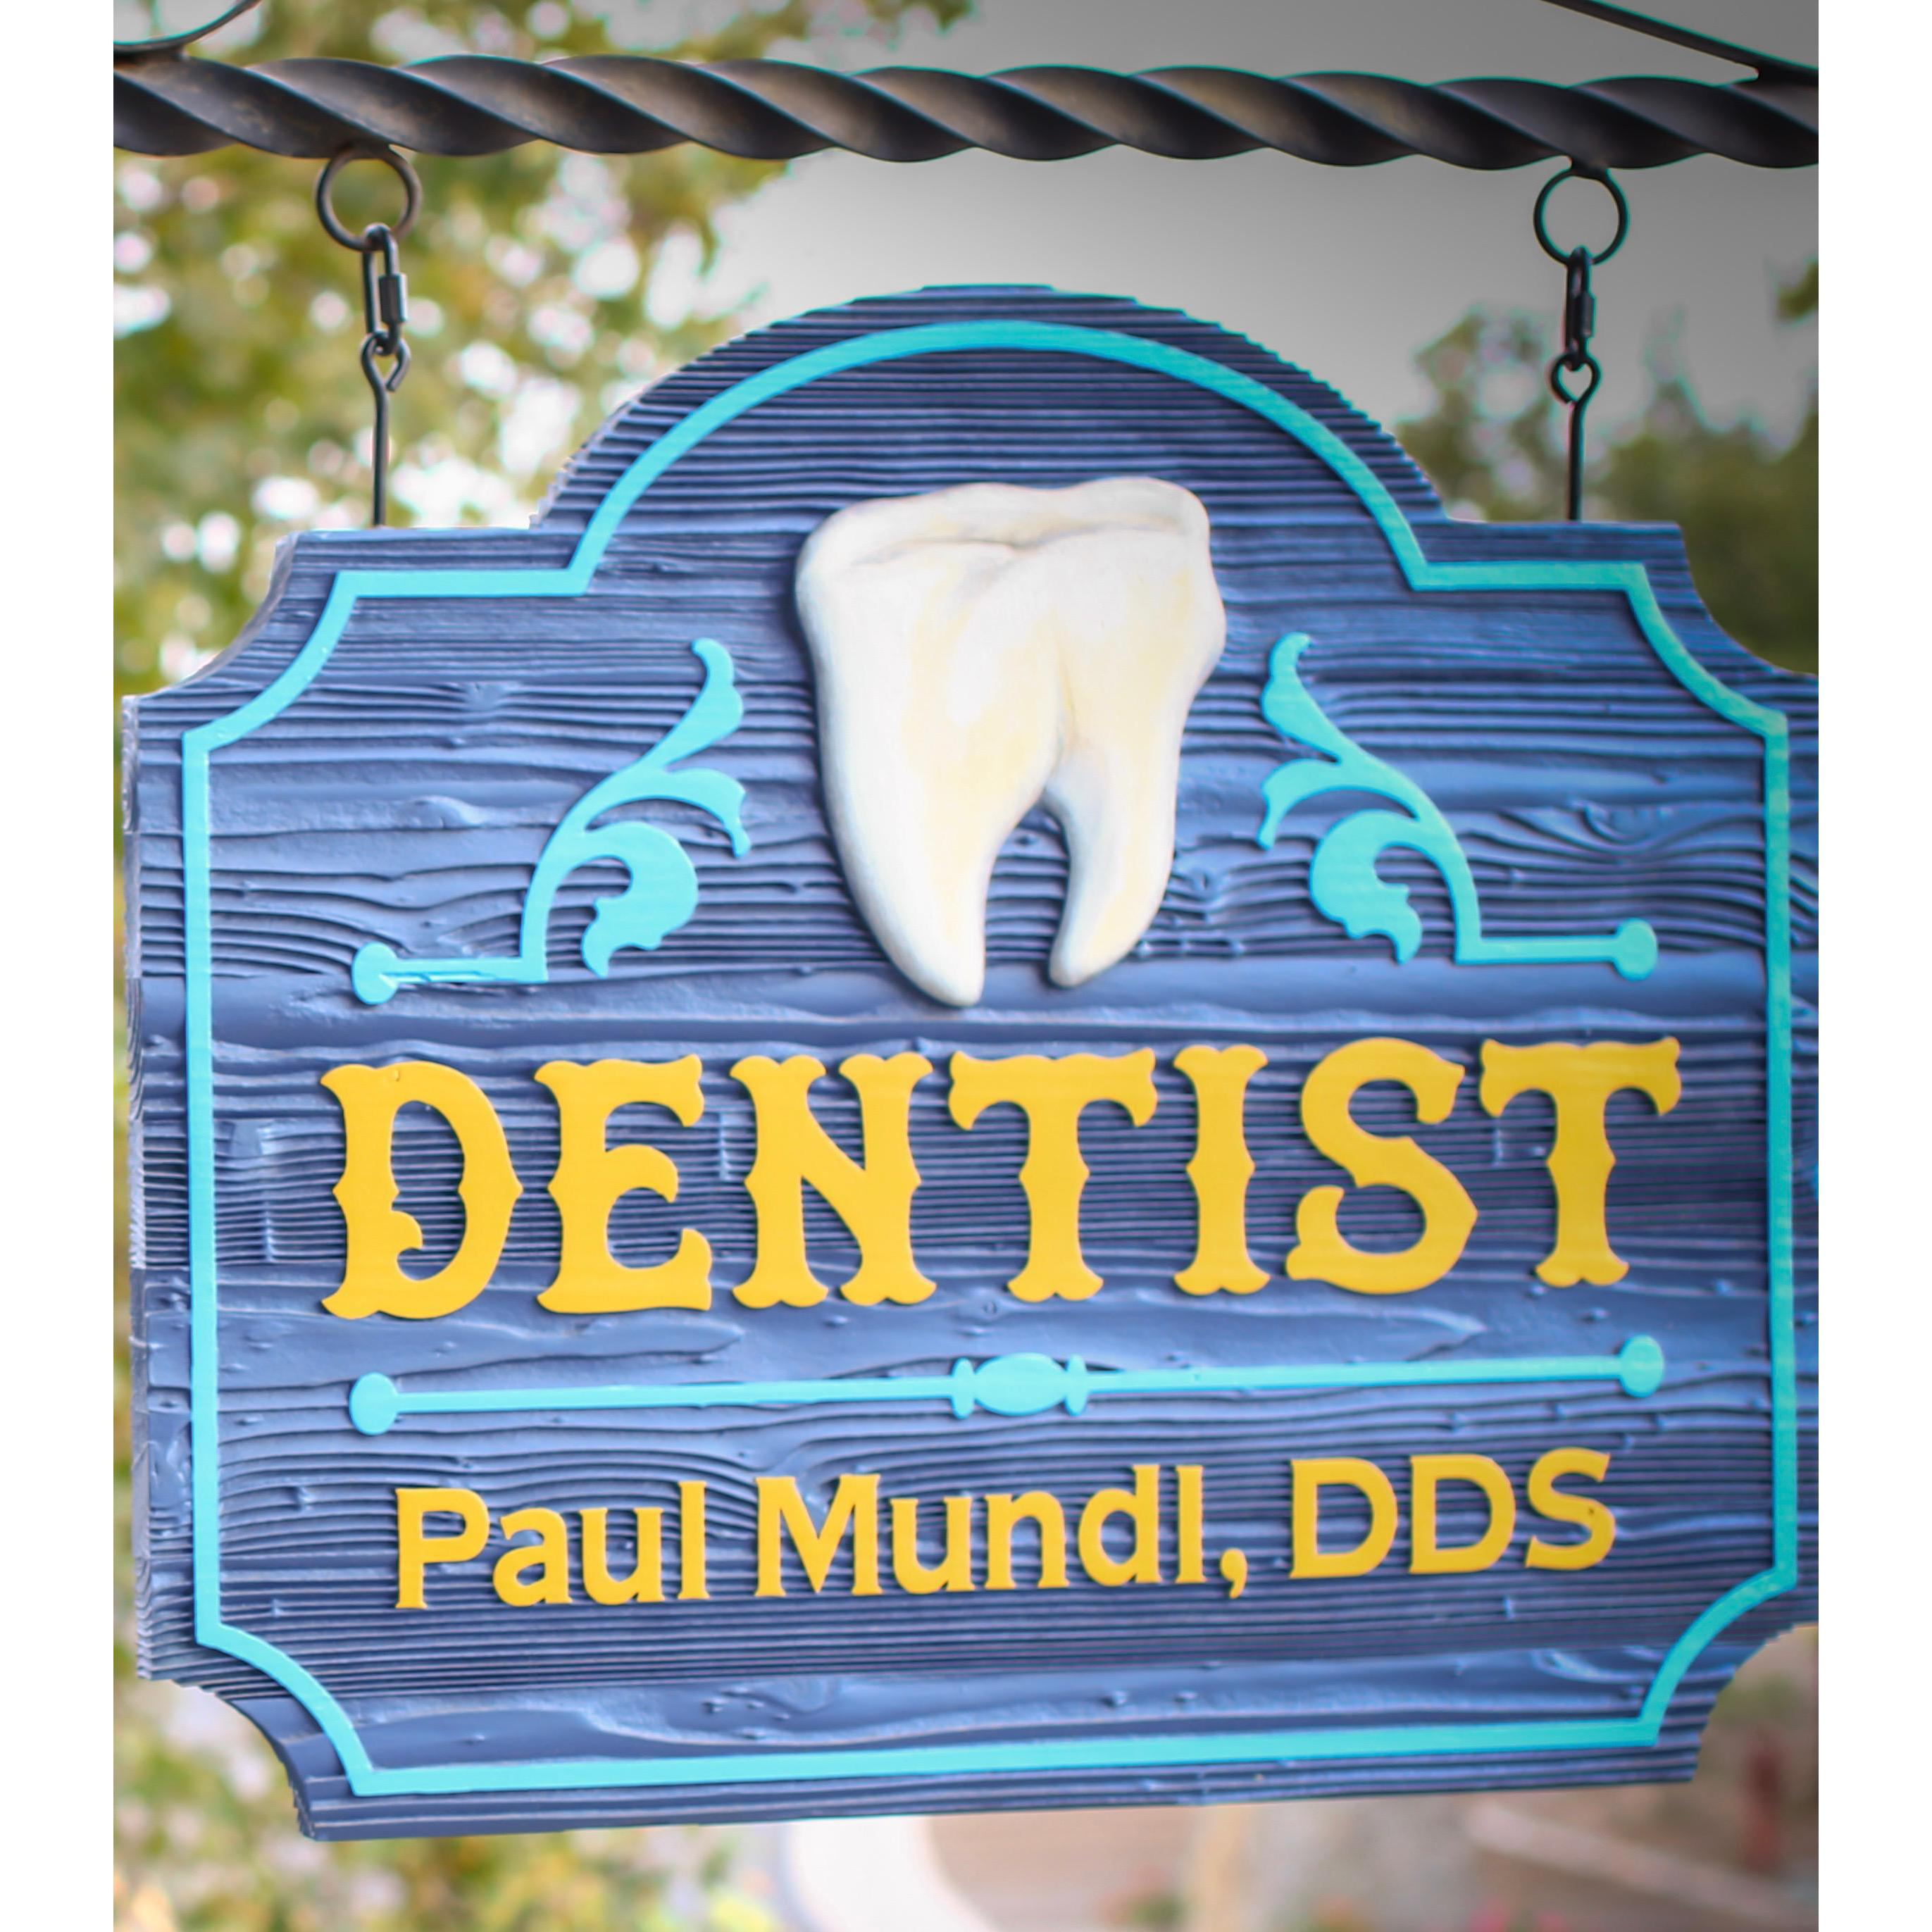 Inland Valley Dental Care: Paul Mundl, DDS